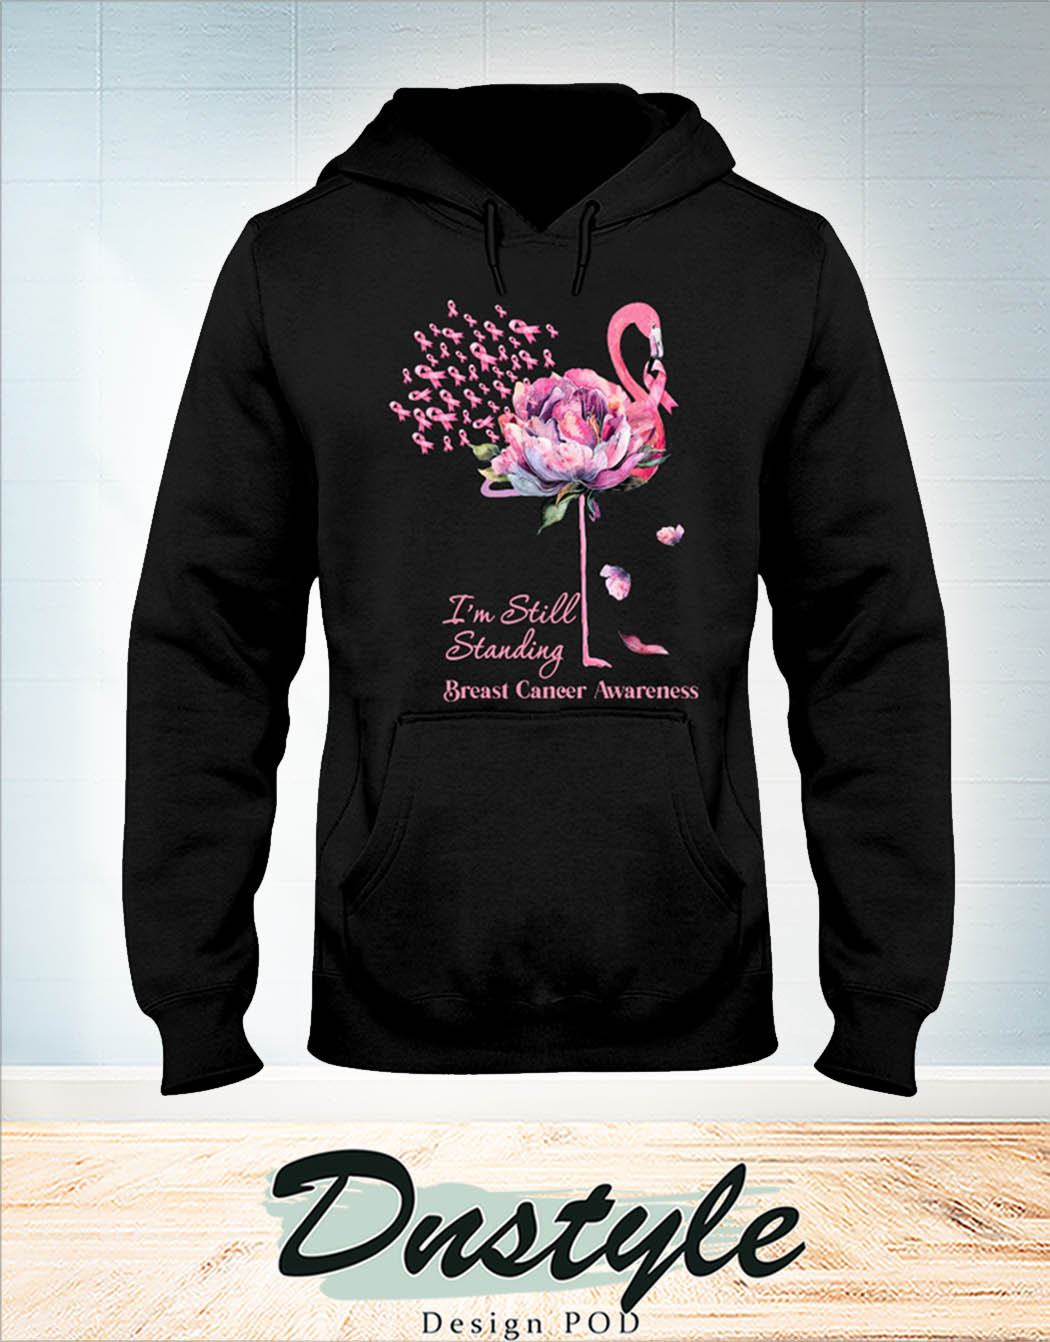 Flamingo I'm still standing breast cancer awareness hoodie